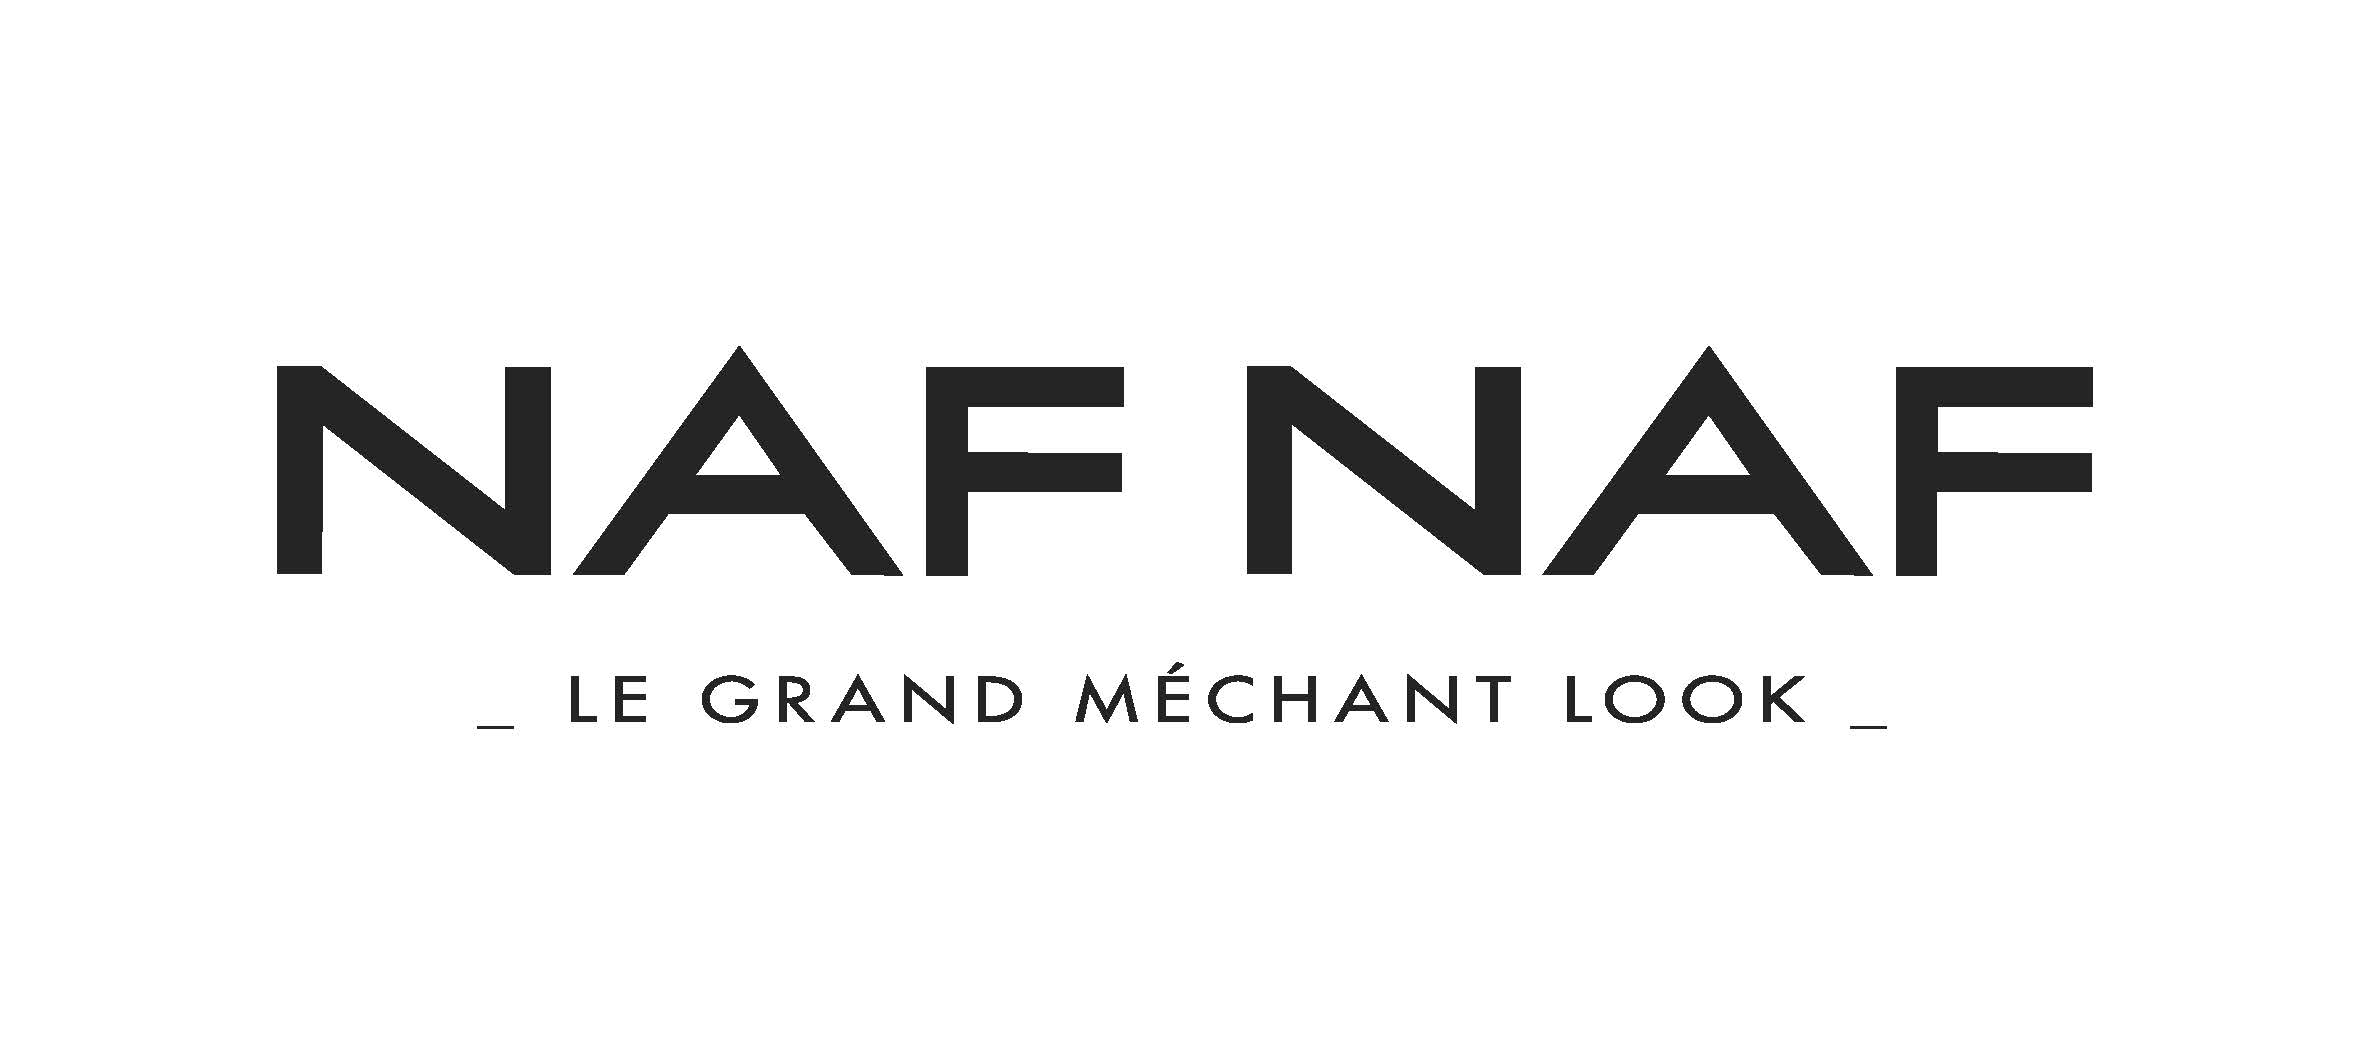 le logo de naf naf le grand méchant look